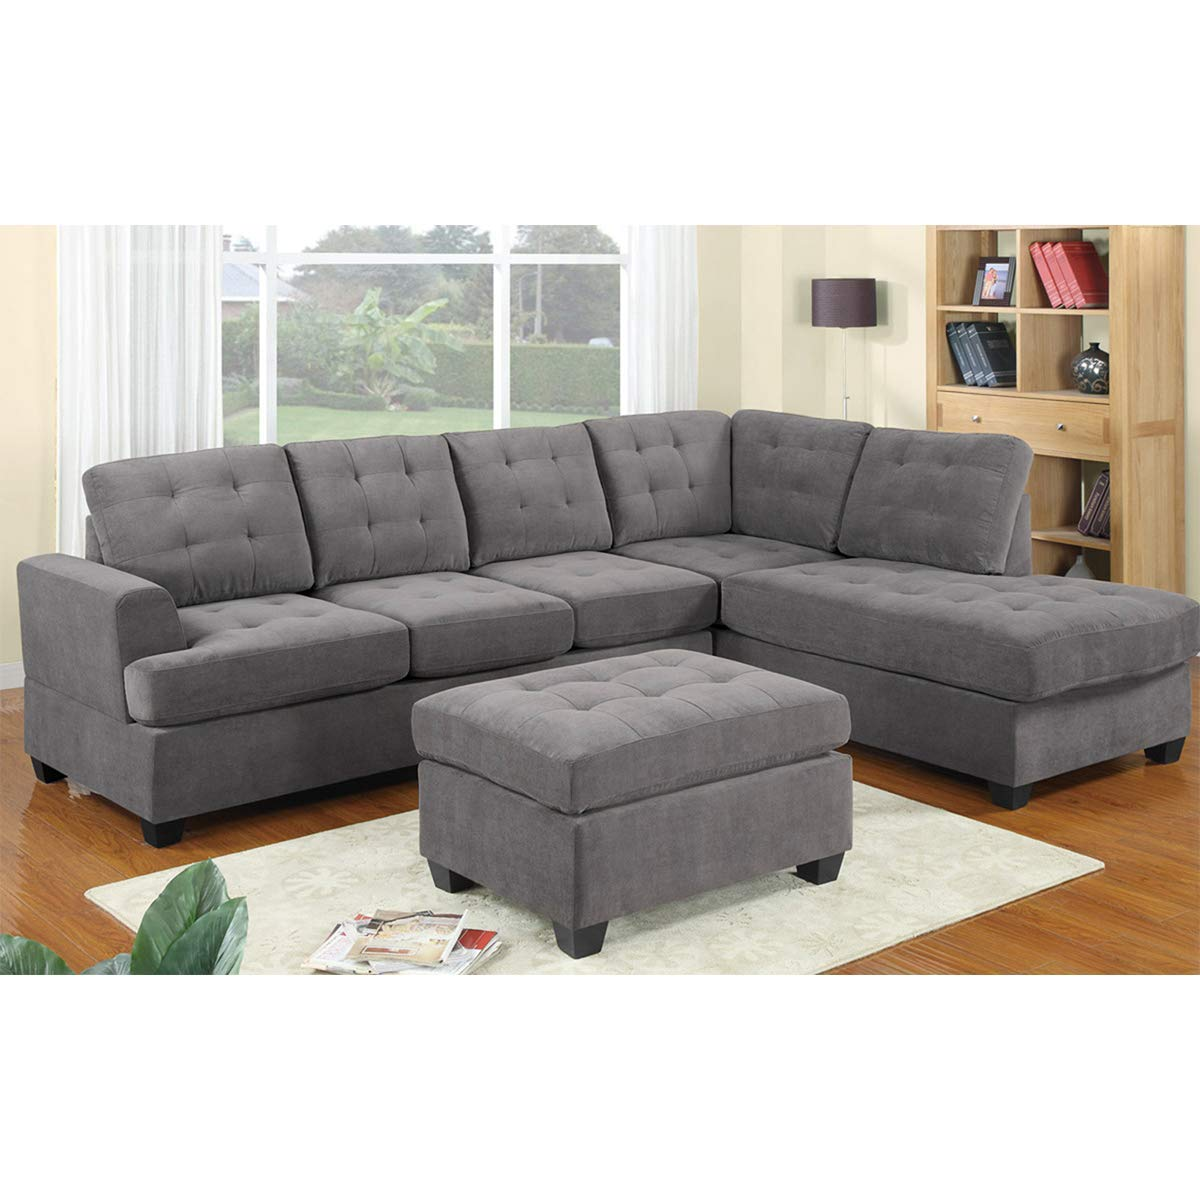 Amazon.com: Hooseng 3-Piece Sectional Sofa Sets Couch with ...